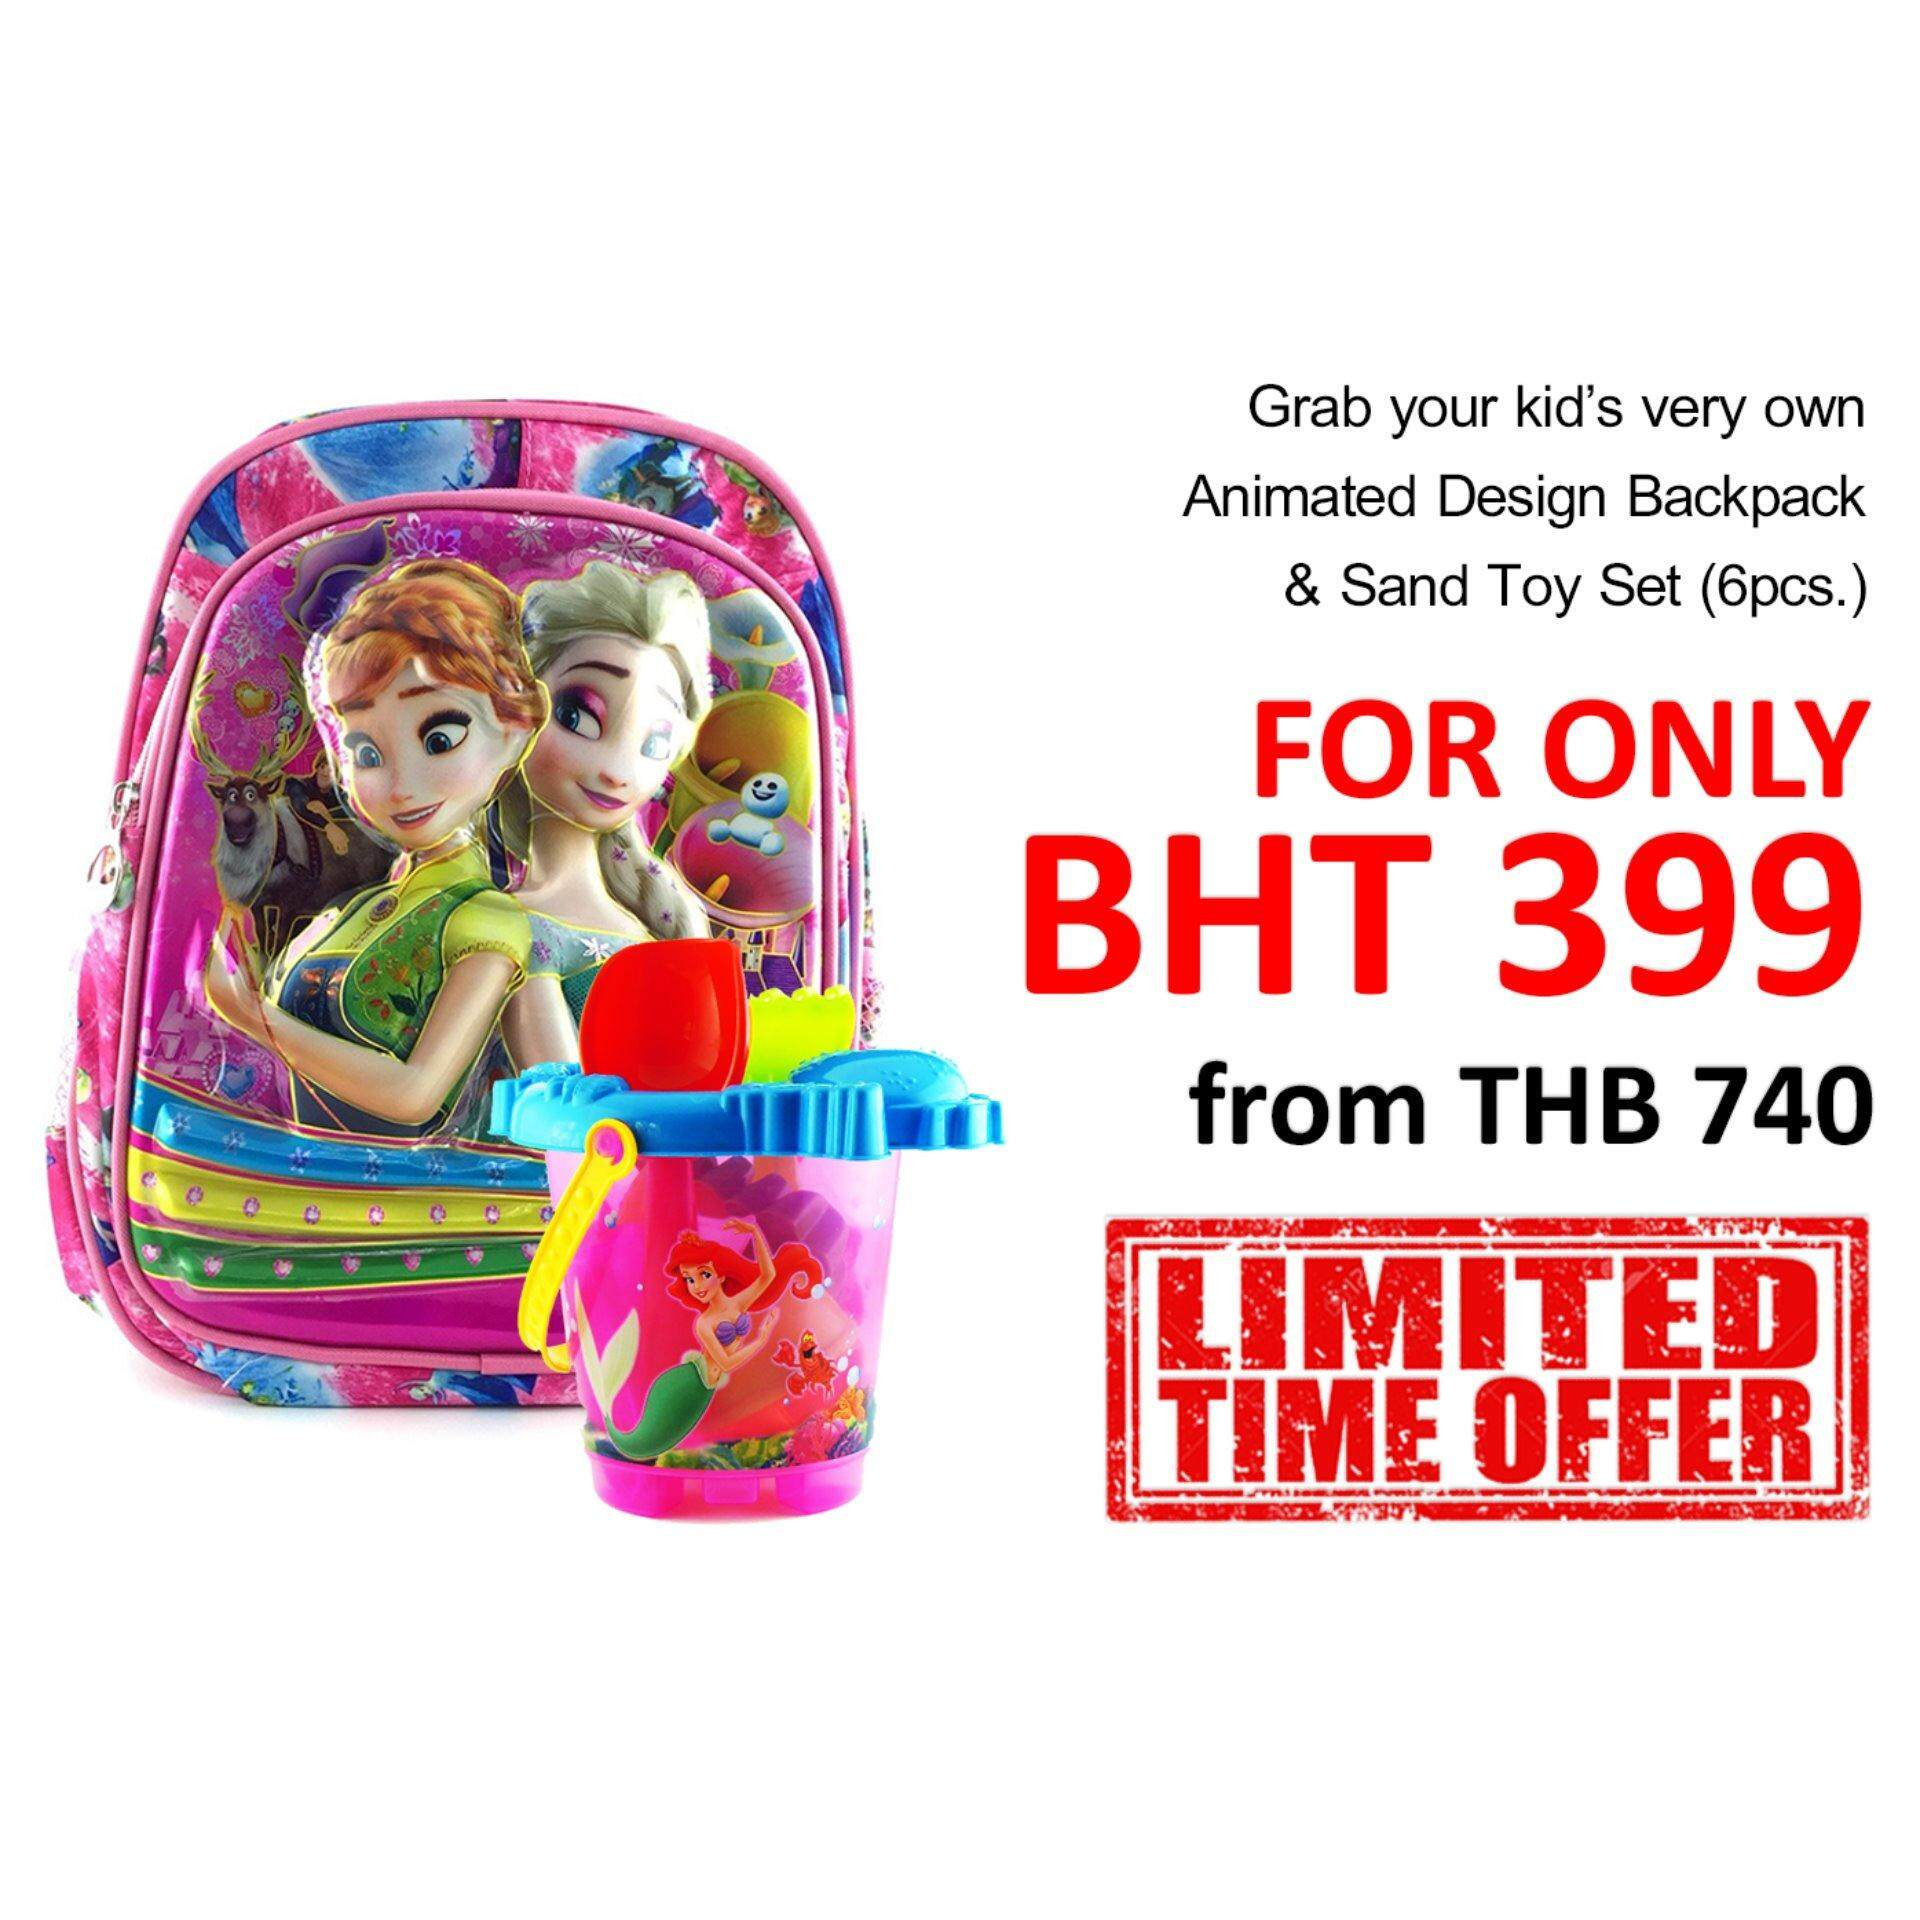 Animated Backpack with 6pcs. Sandtoy (Set)